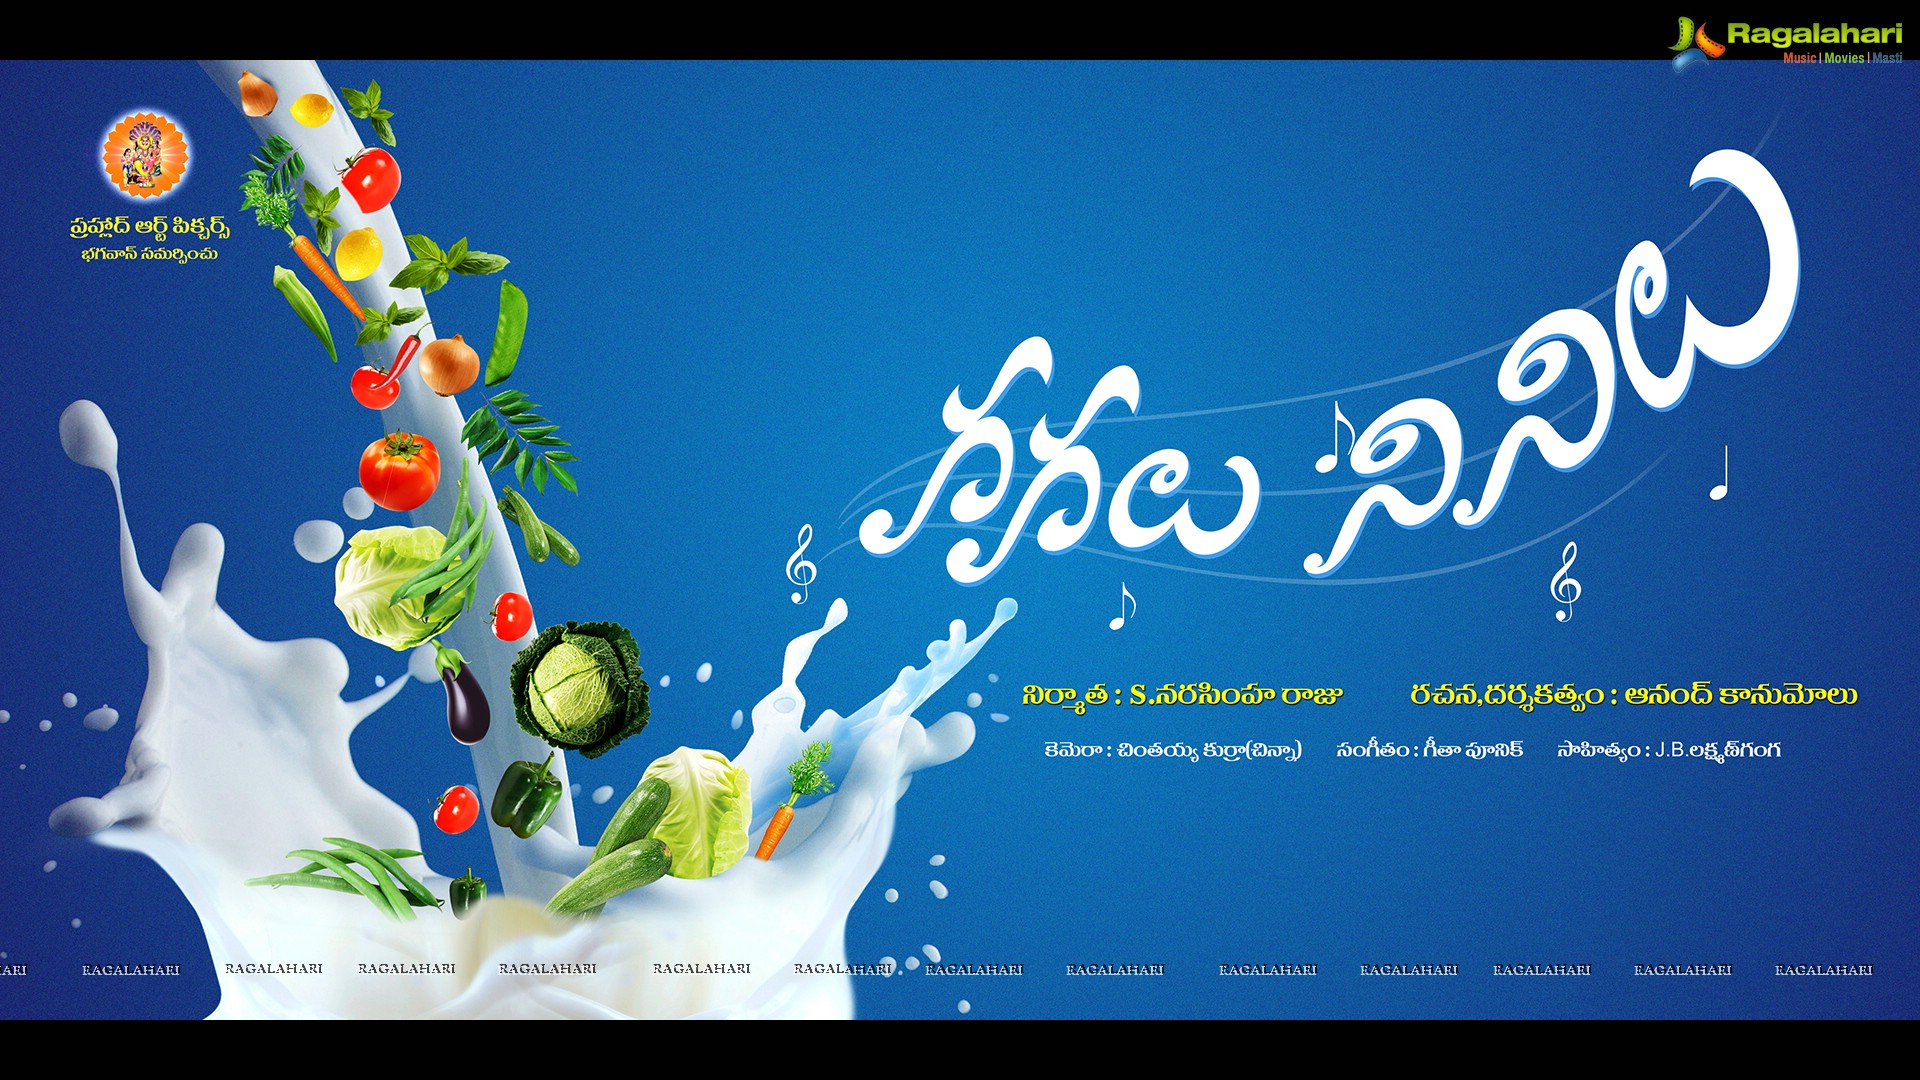 'Gagalu Ninilu' movie details